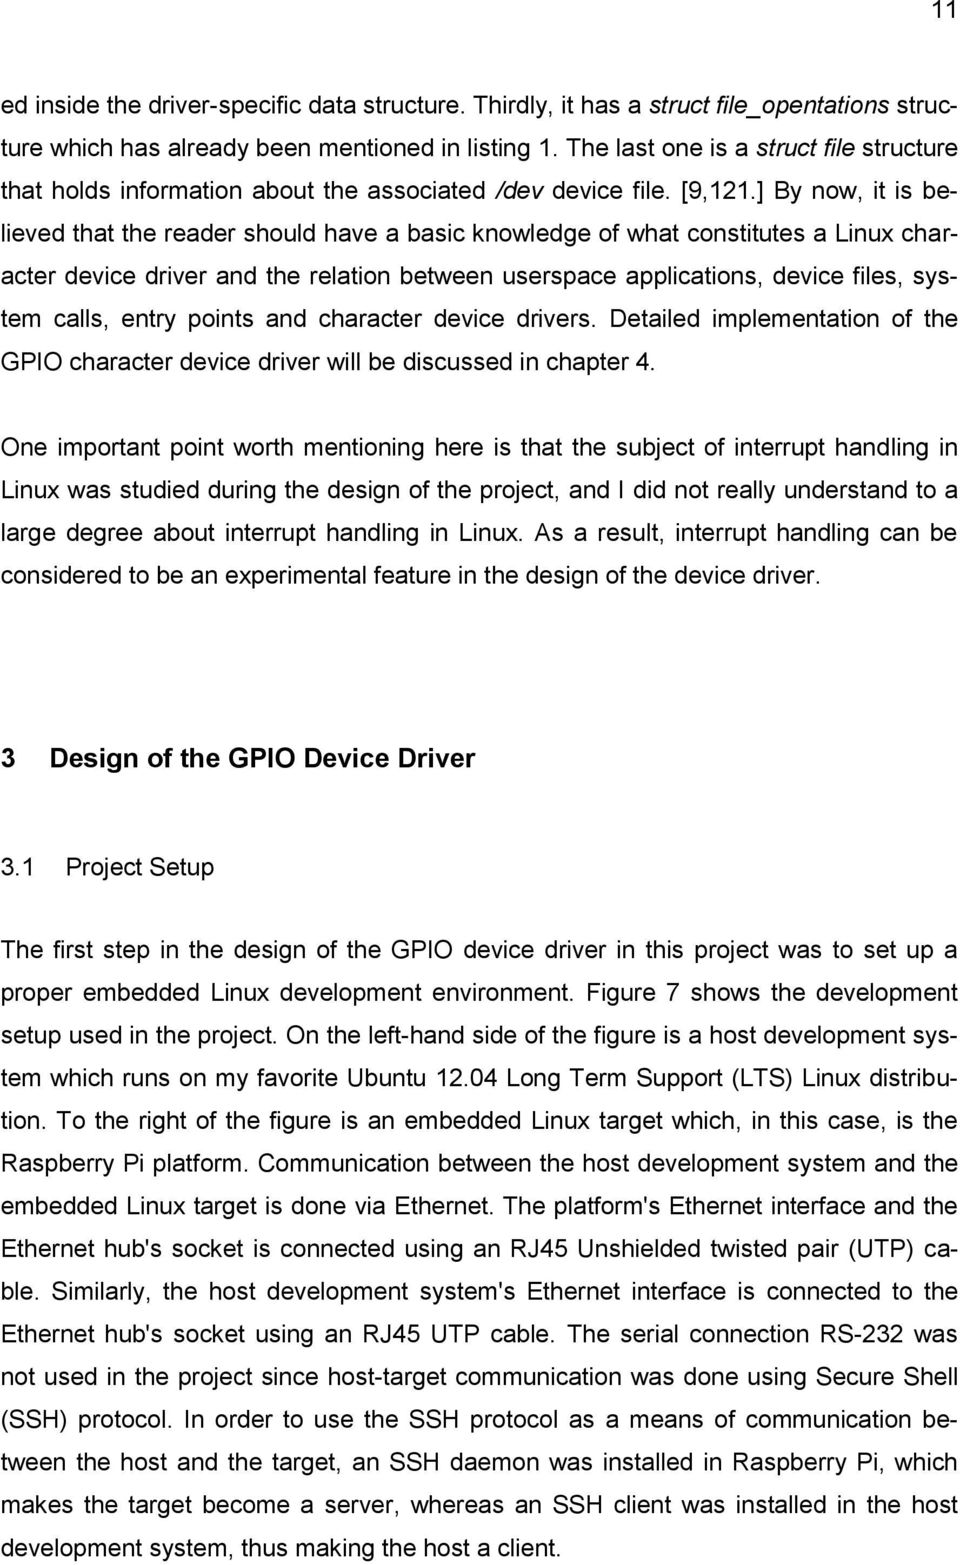 Implementation of Linux GPIO Device Driver on Raspberry Pi Platform